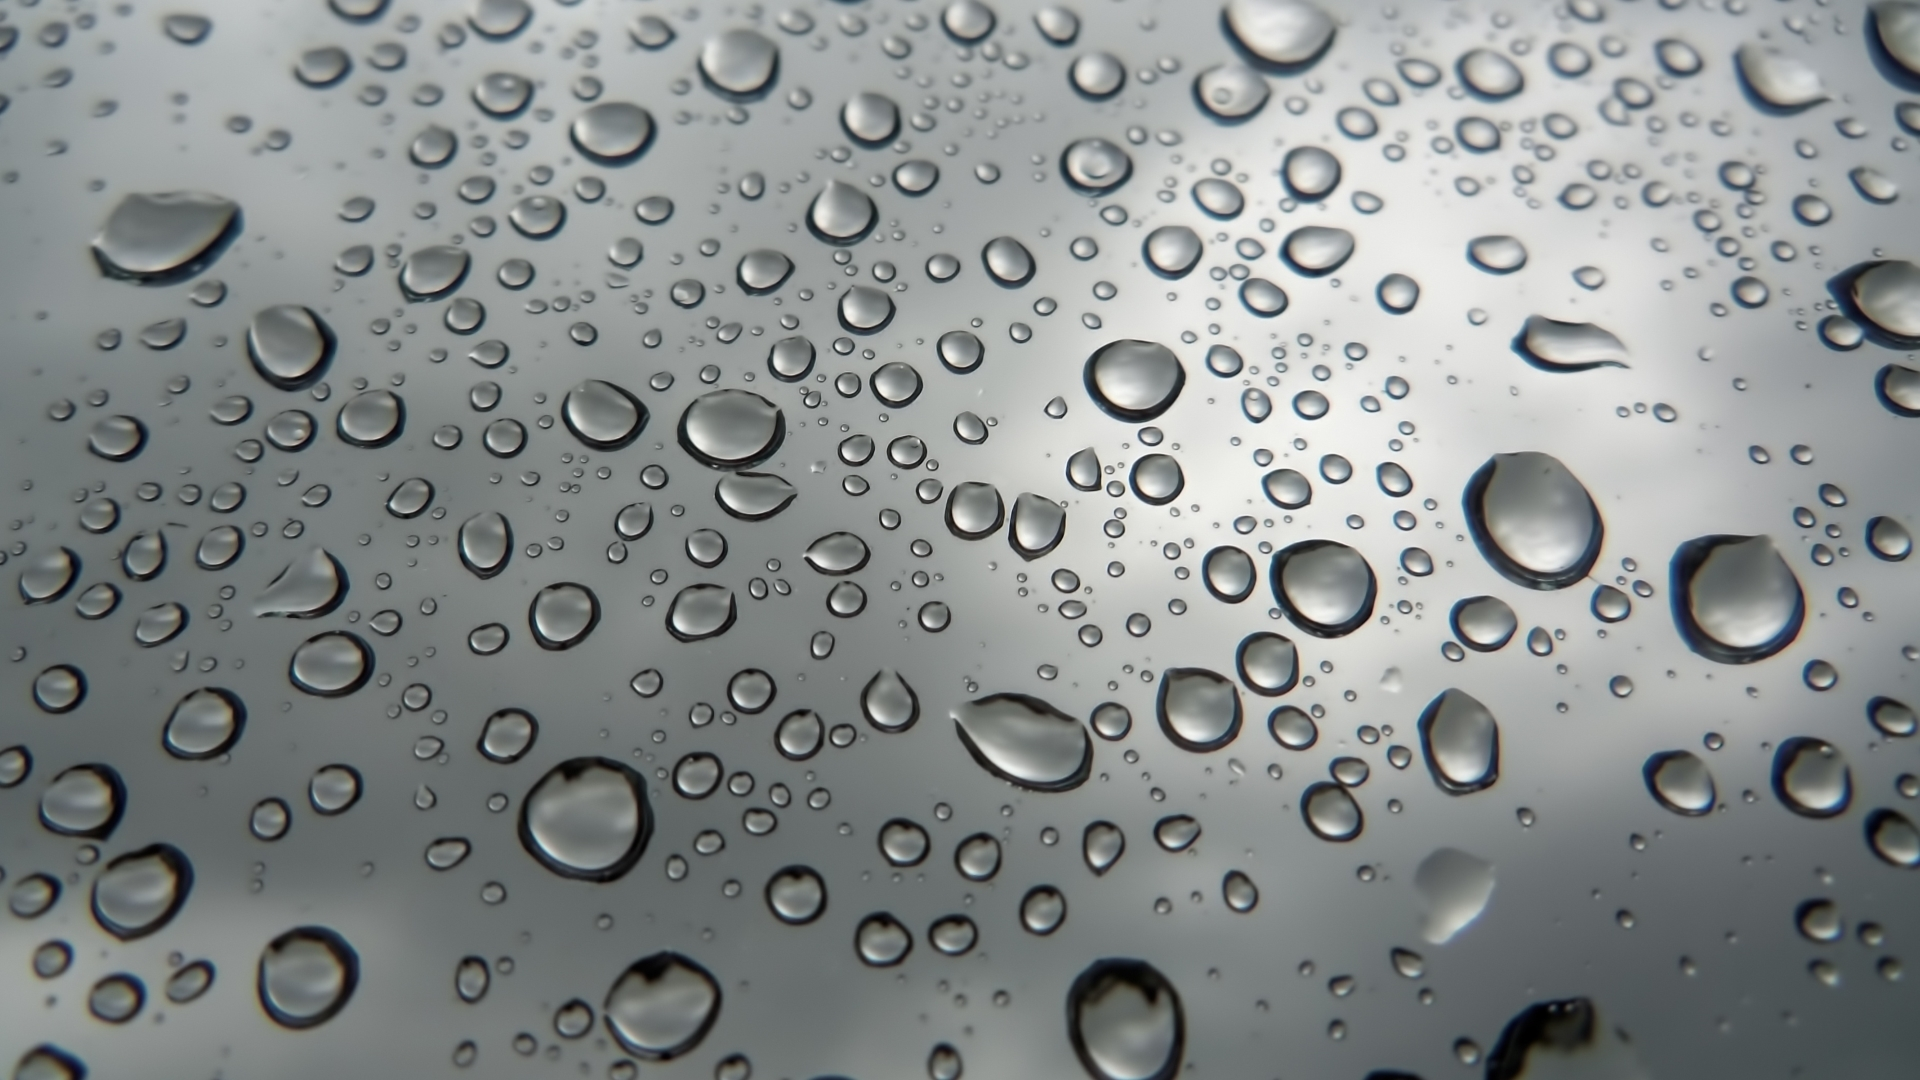 Rain Drops Wallpapers wallpaper Raindrops Live Wallpaper HD Android Apps on Google Play 1920x1080